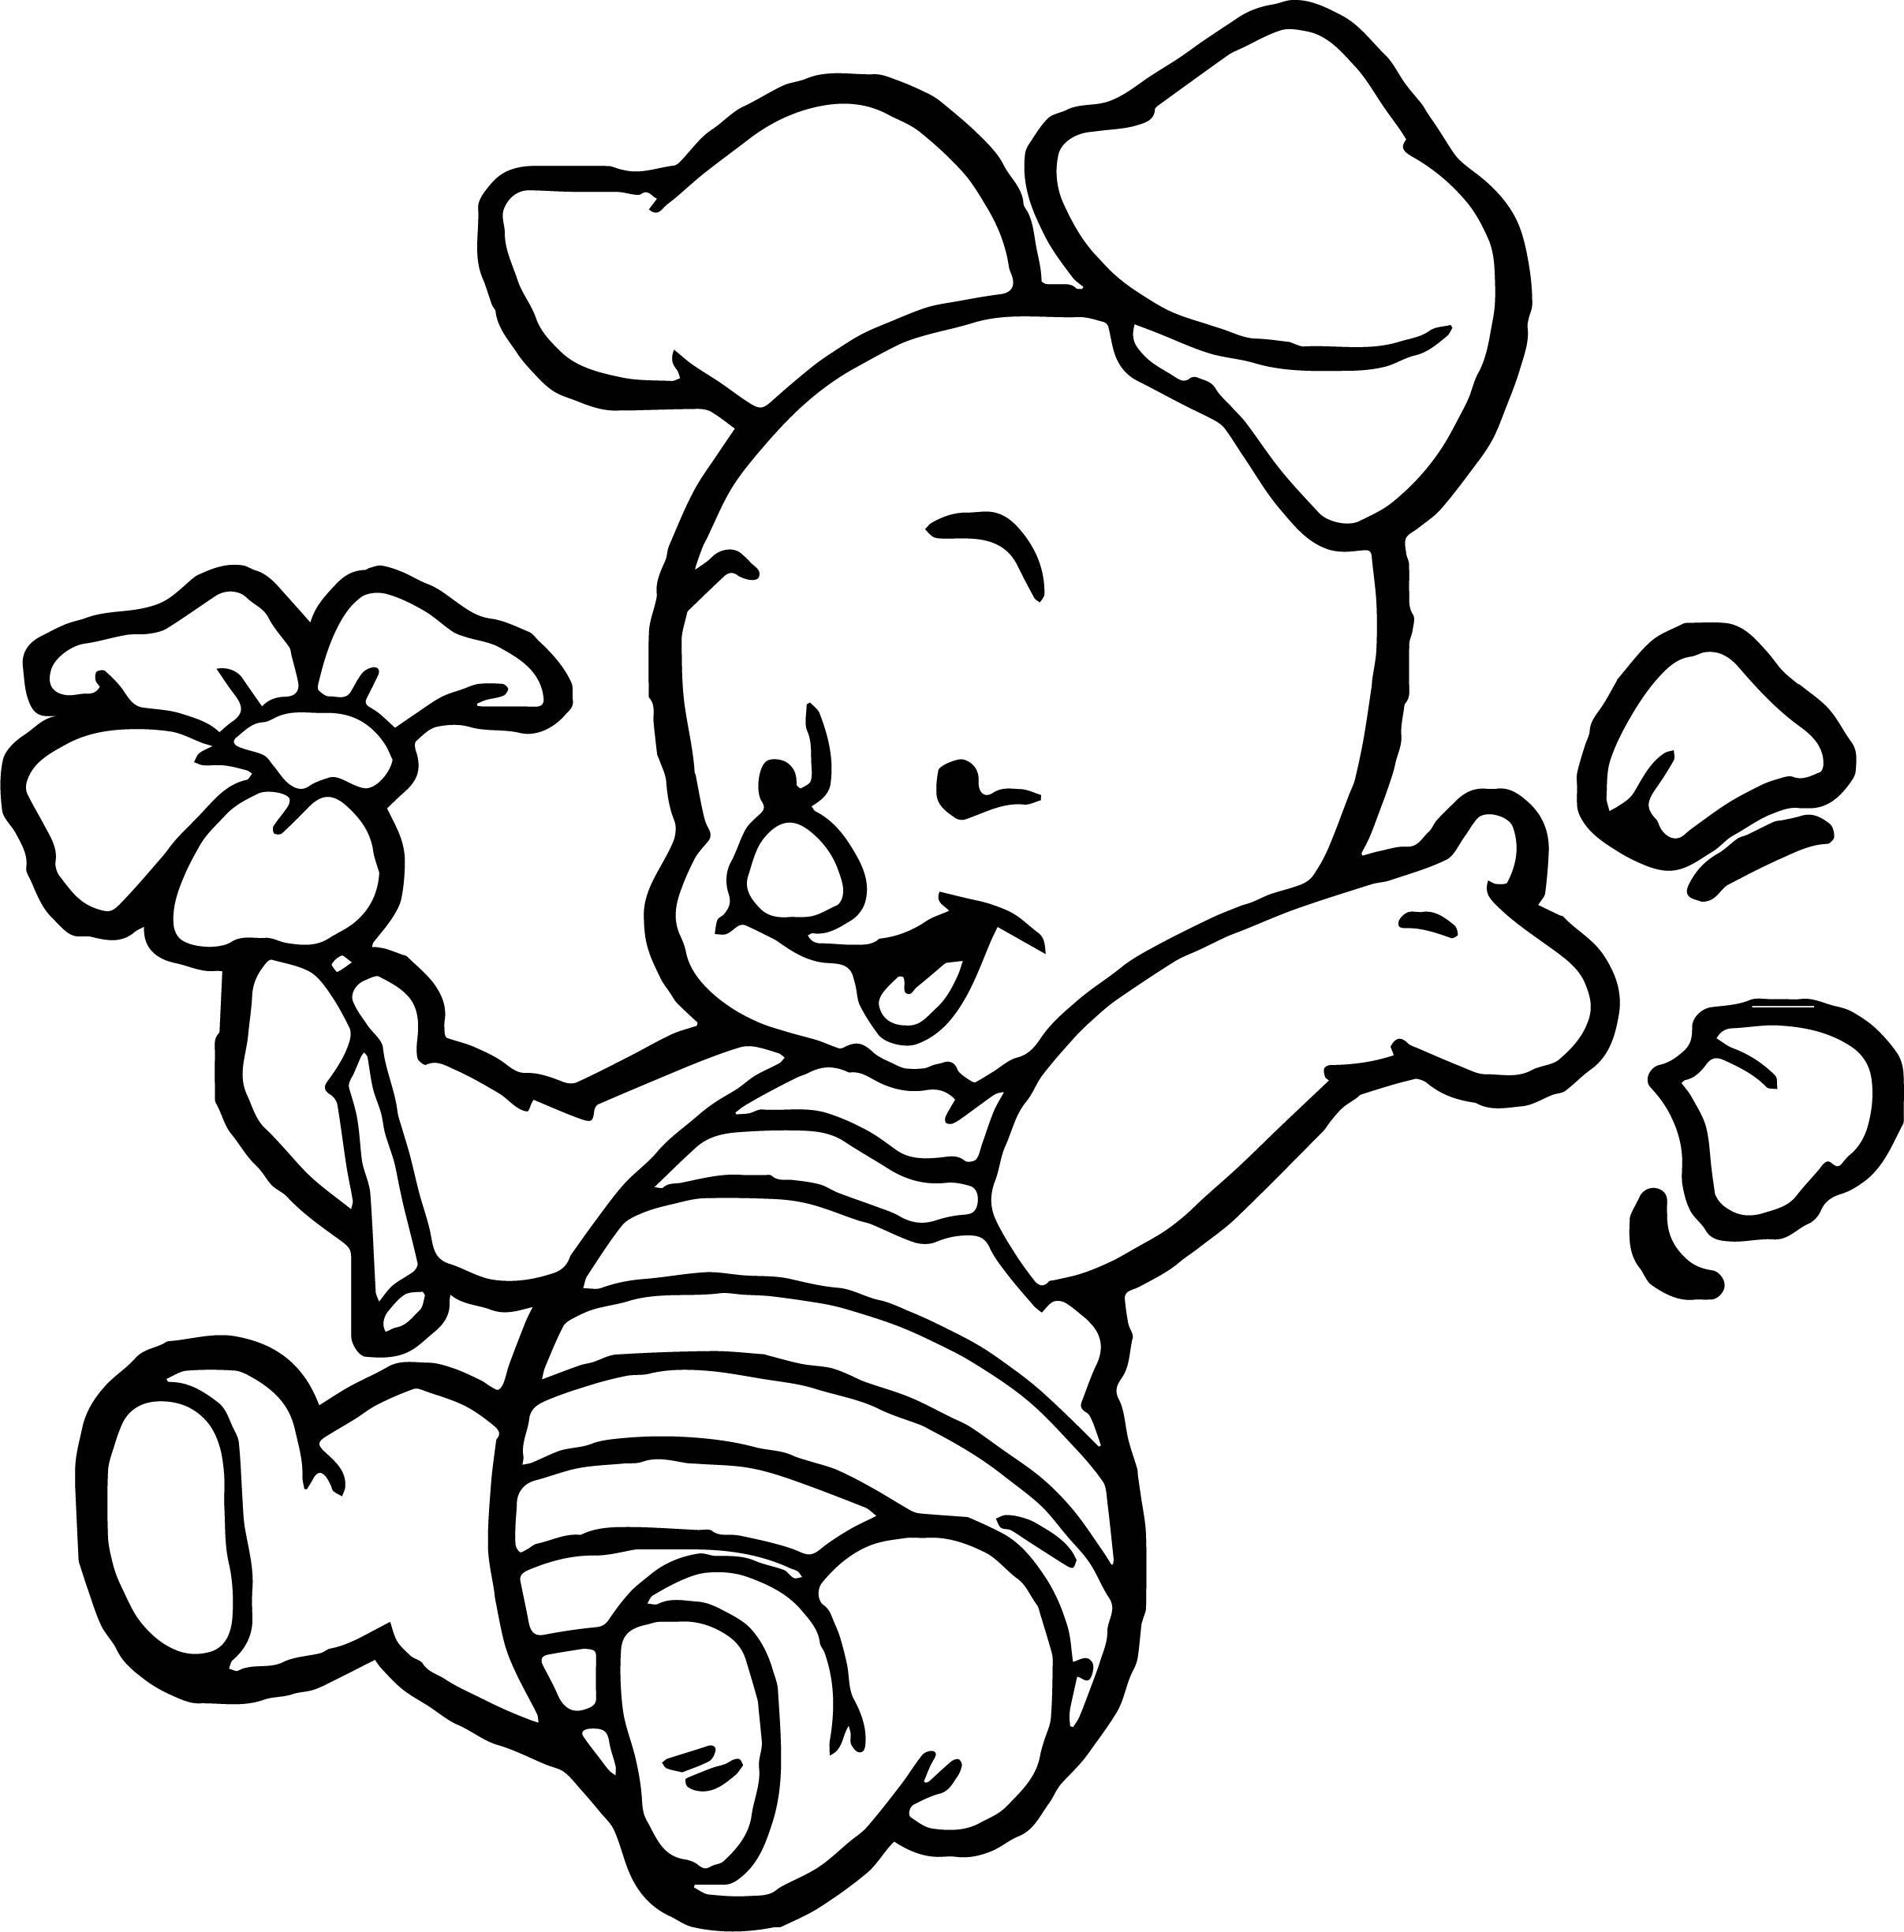 10 Top Image Piglet Coloring Pages In 2021 Winnie The Pooh Drawing Cartoon Coloring Pages Disney Coloring Pages